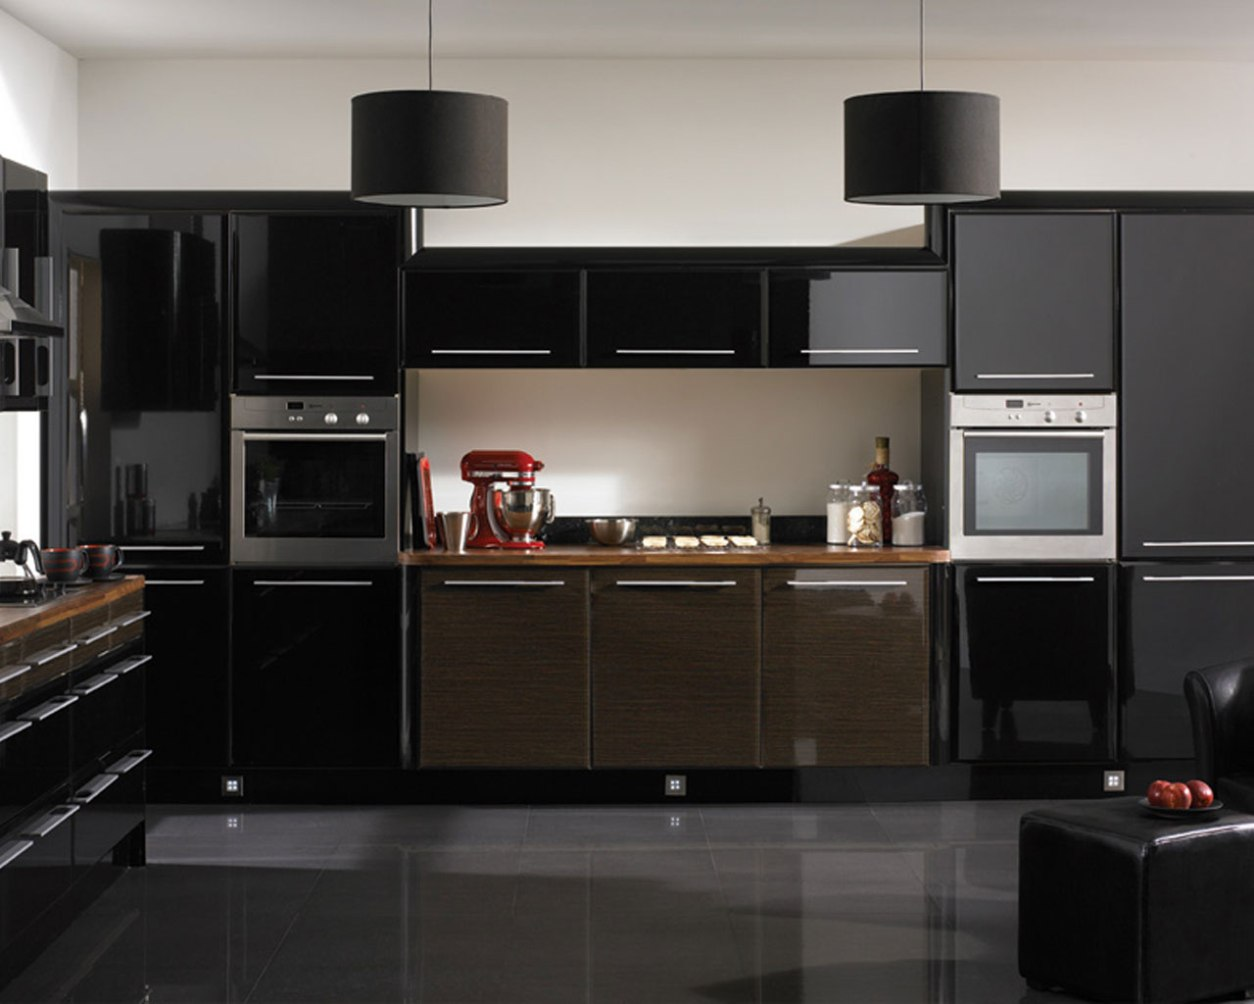 kitchens-with-black-cabinets